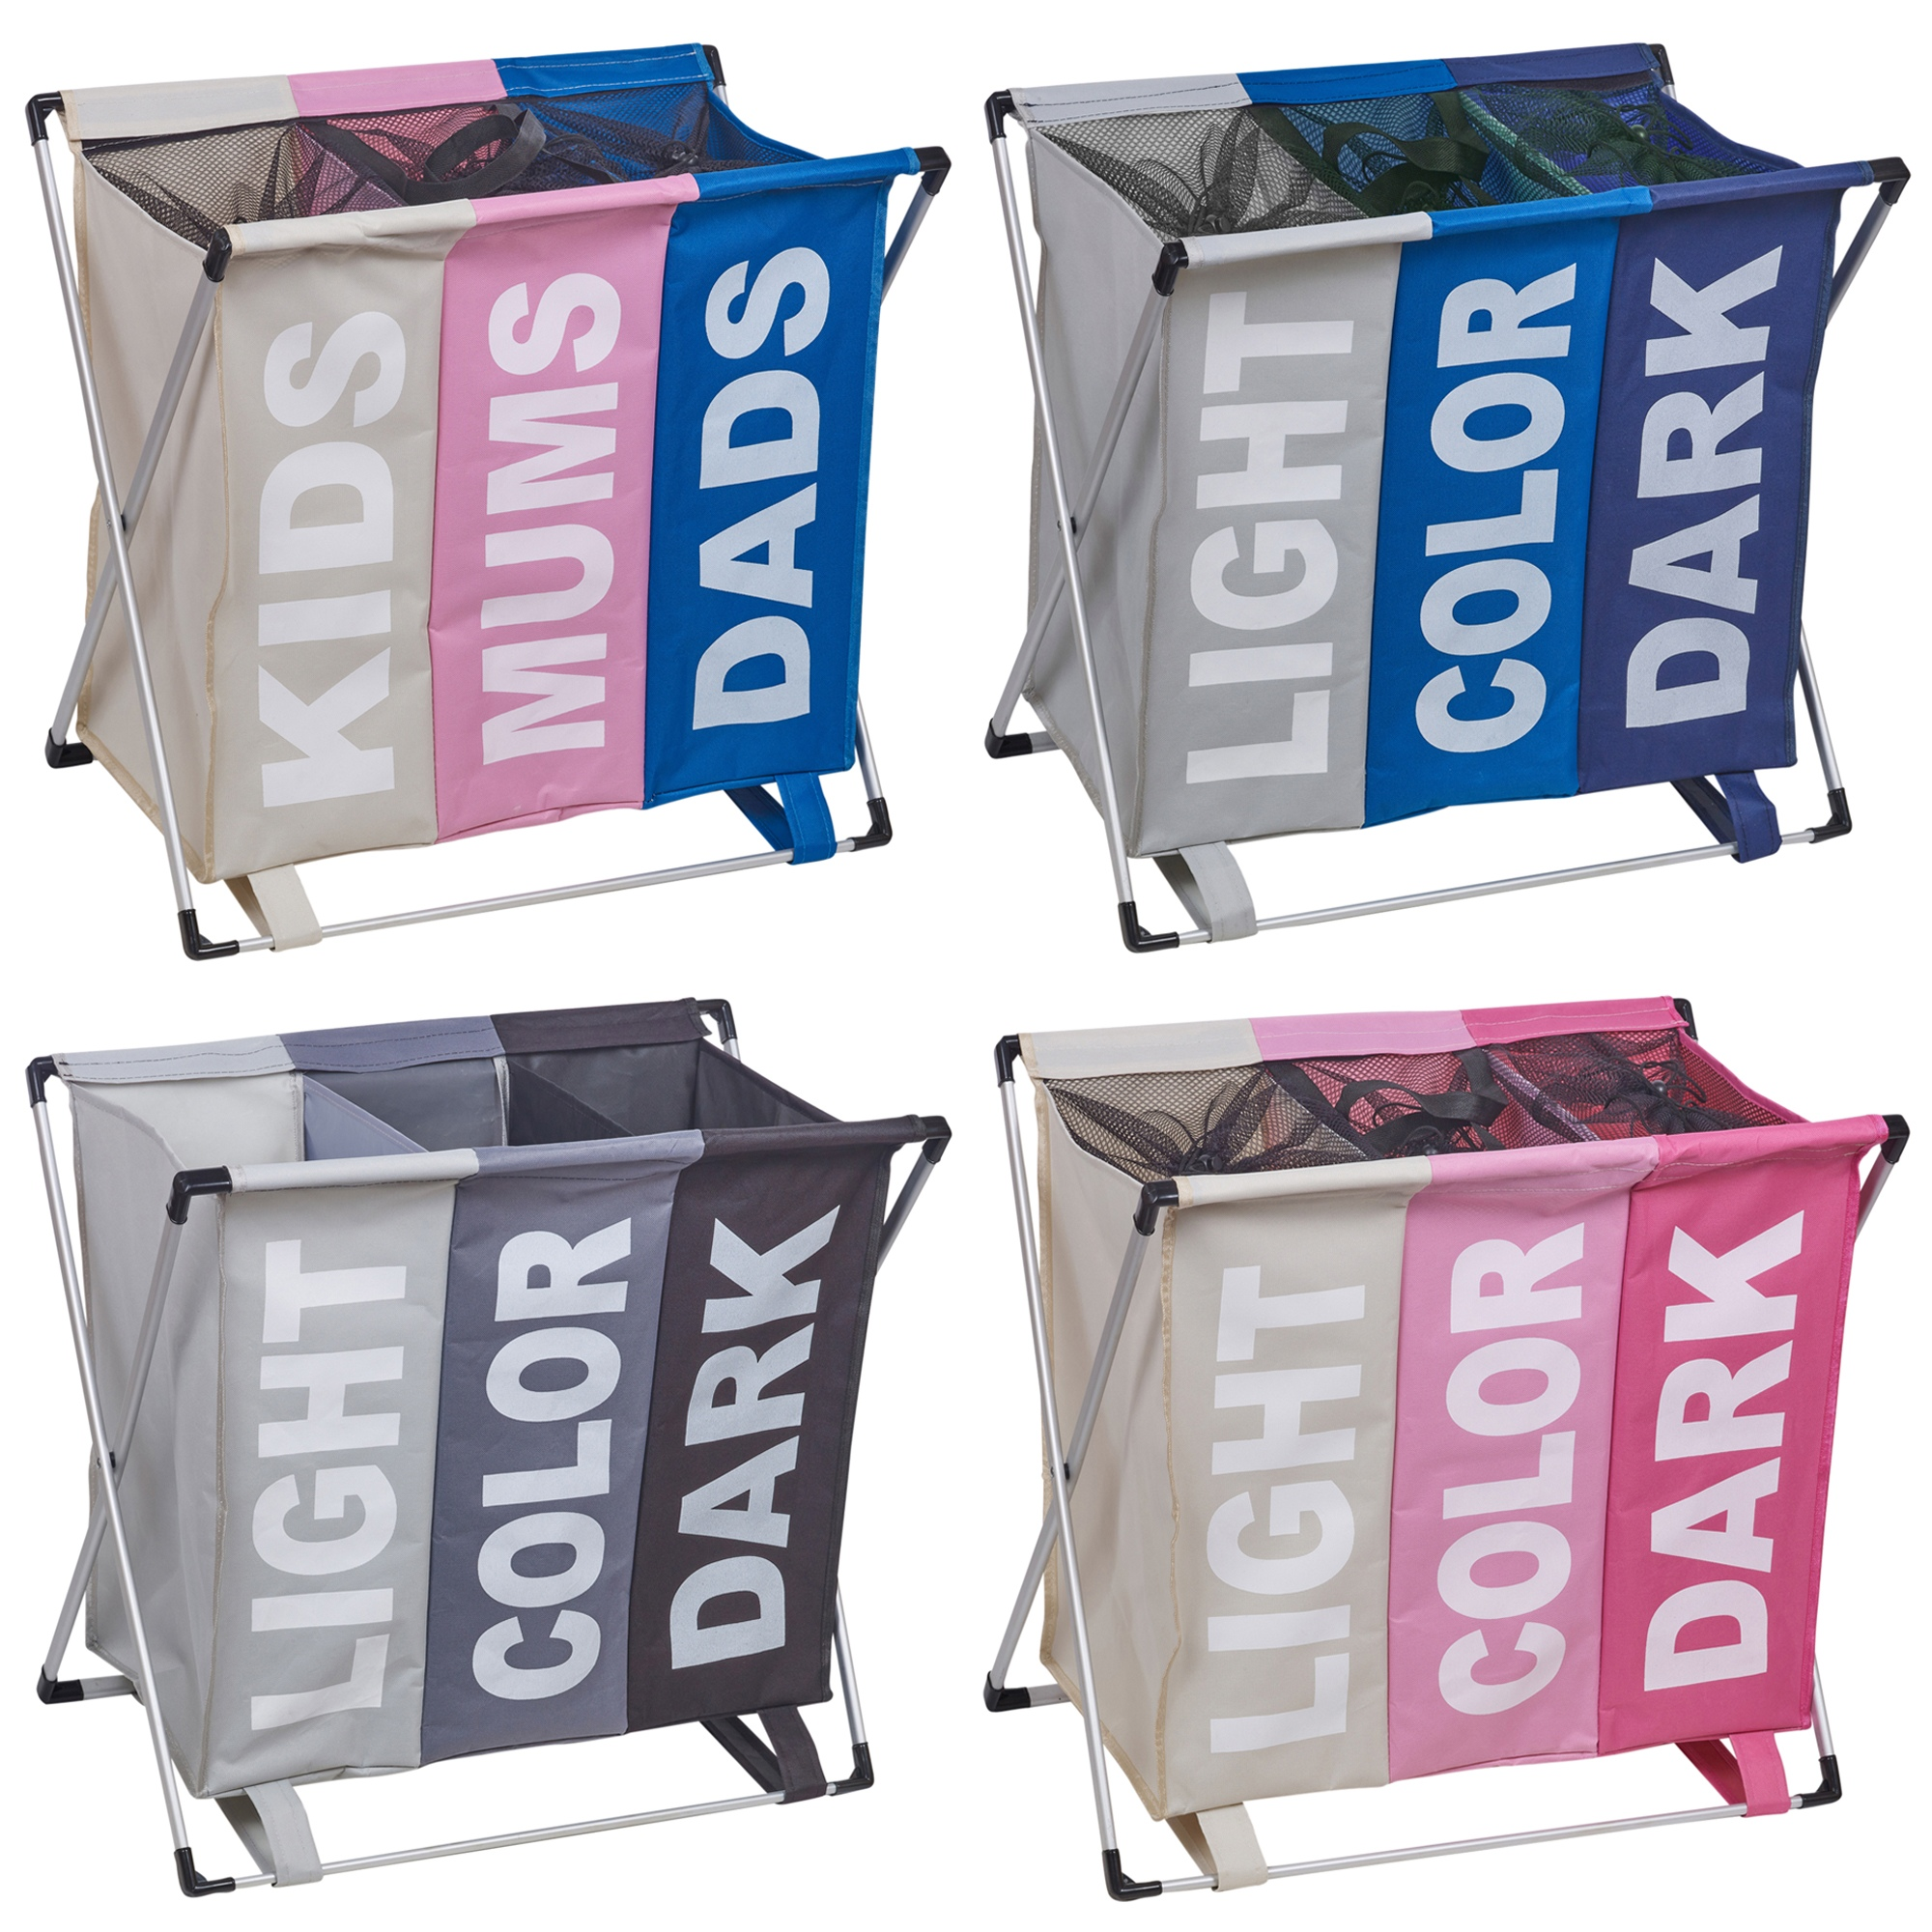 Compartments for Light Coloured /& dark Clothes Pink /& Grey Foldable URBNLIVING 3 Section Woven Fabric Laundry Hamper Basket /& Organiser Rack